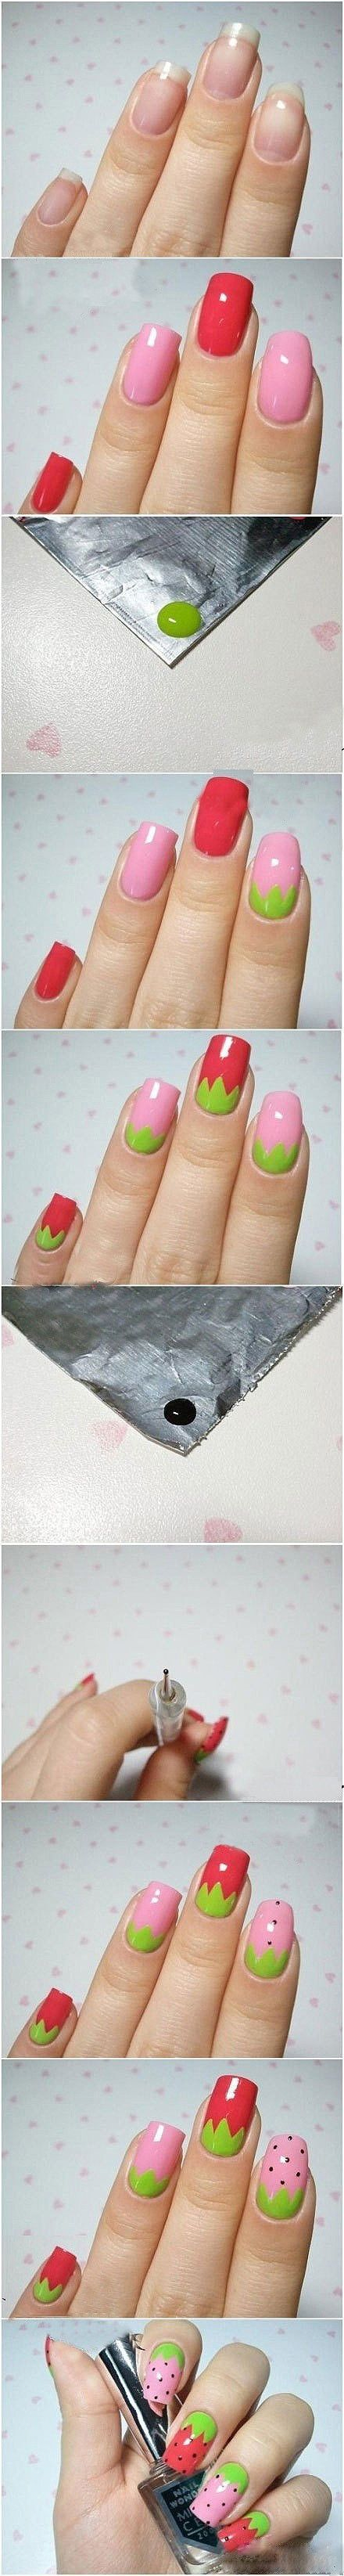 OK I'm probably never actually going to paint my nails like this ... but they're cute!